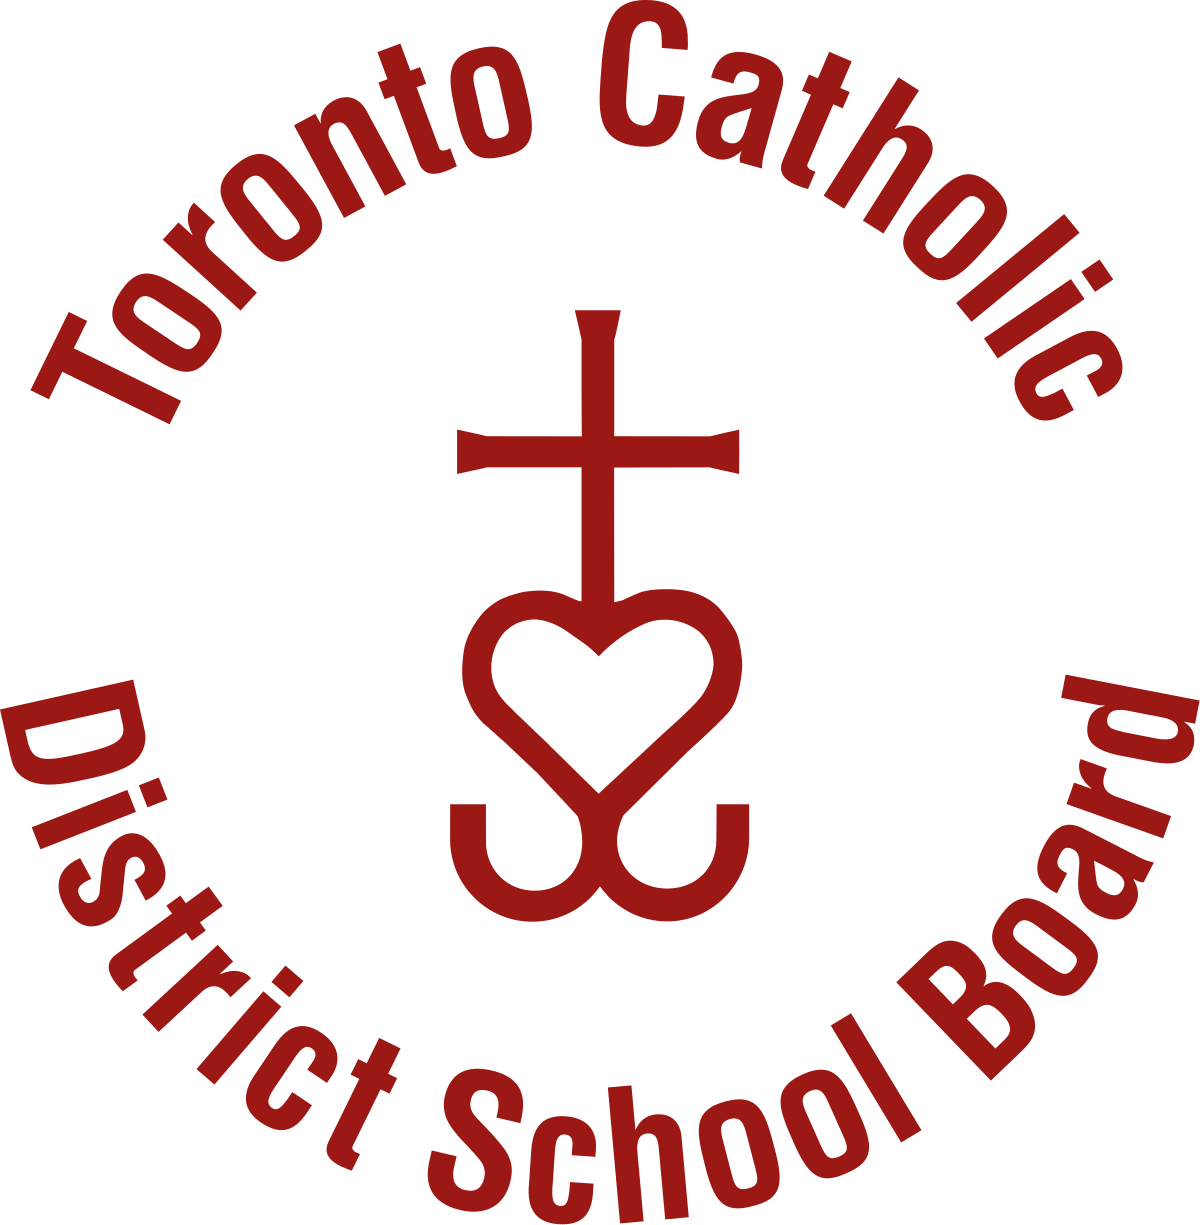 Toronto Catholic